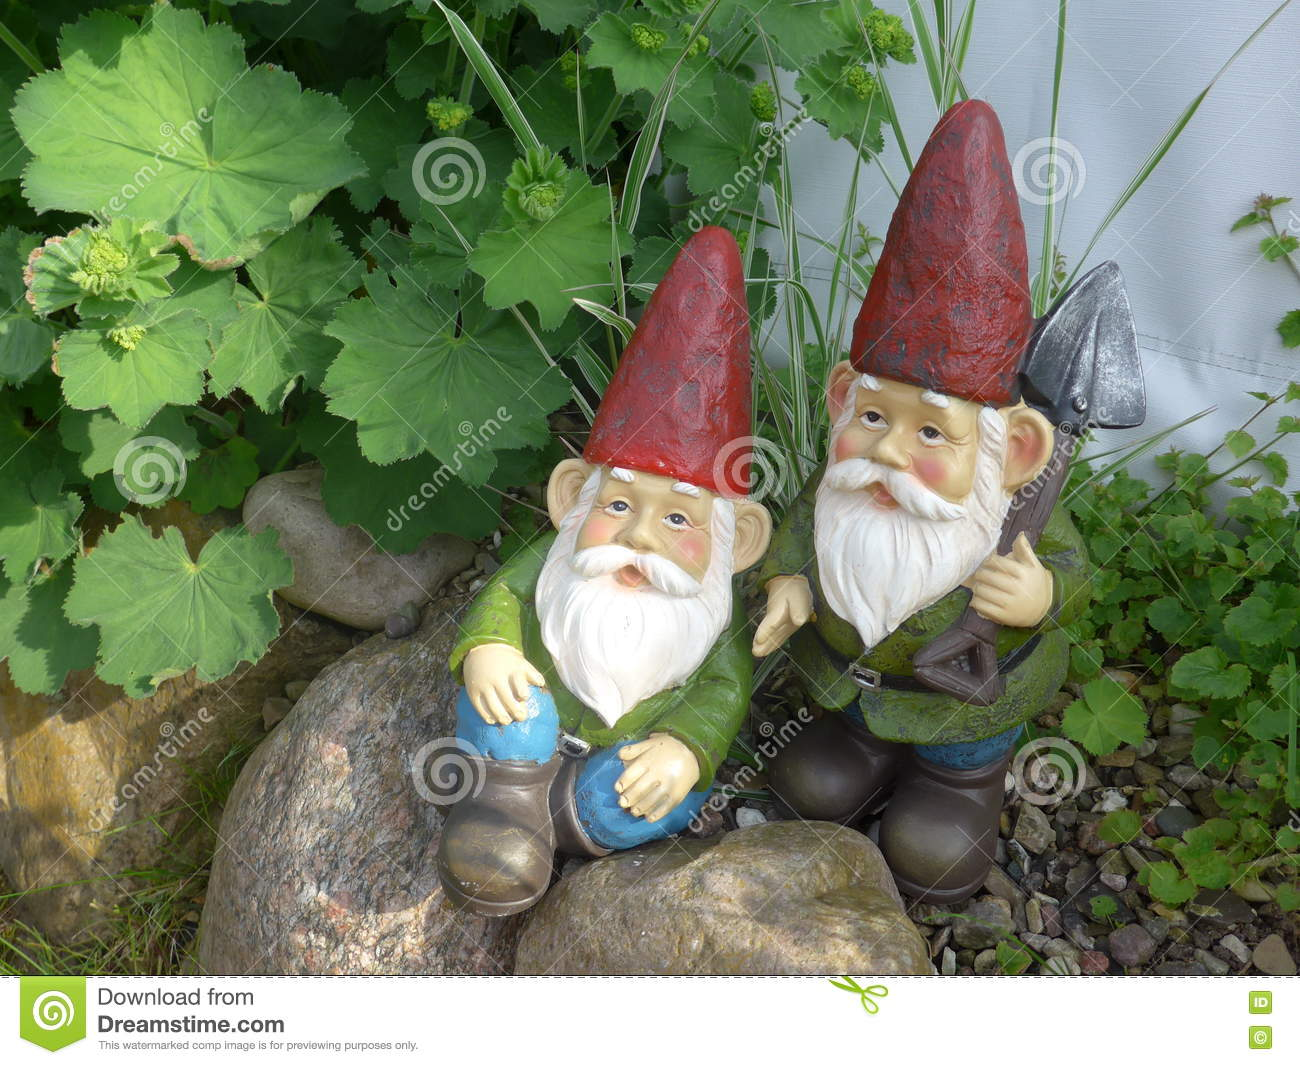 download two funny garden gnomes with red hats stock image image of artificial green - Funny Garden Gnomes